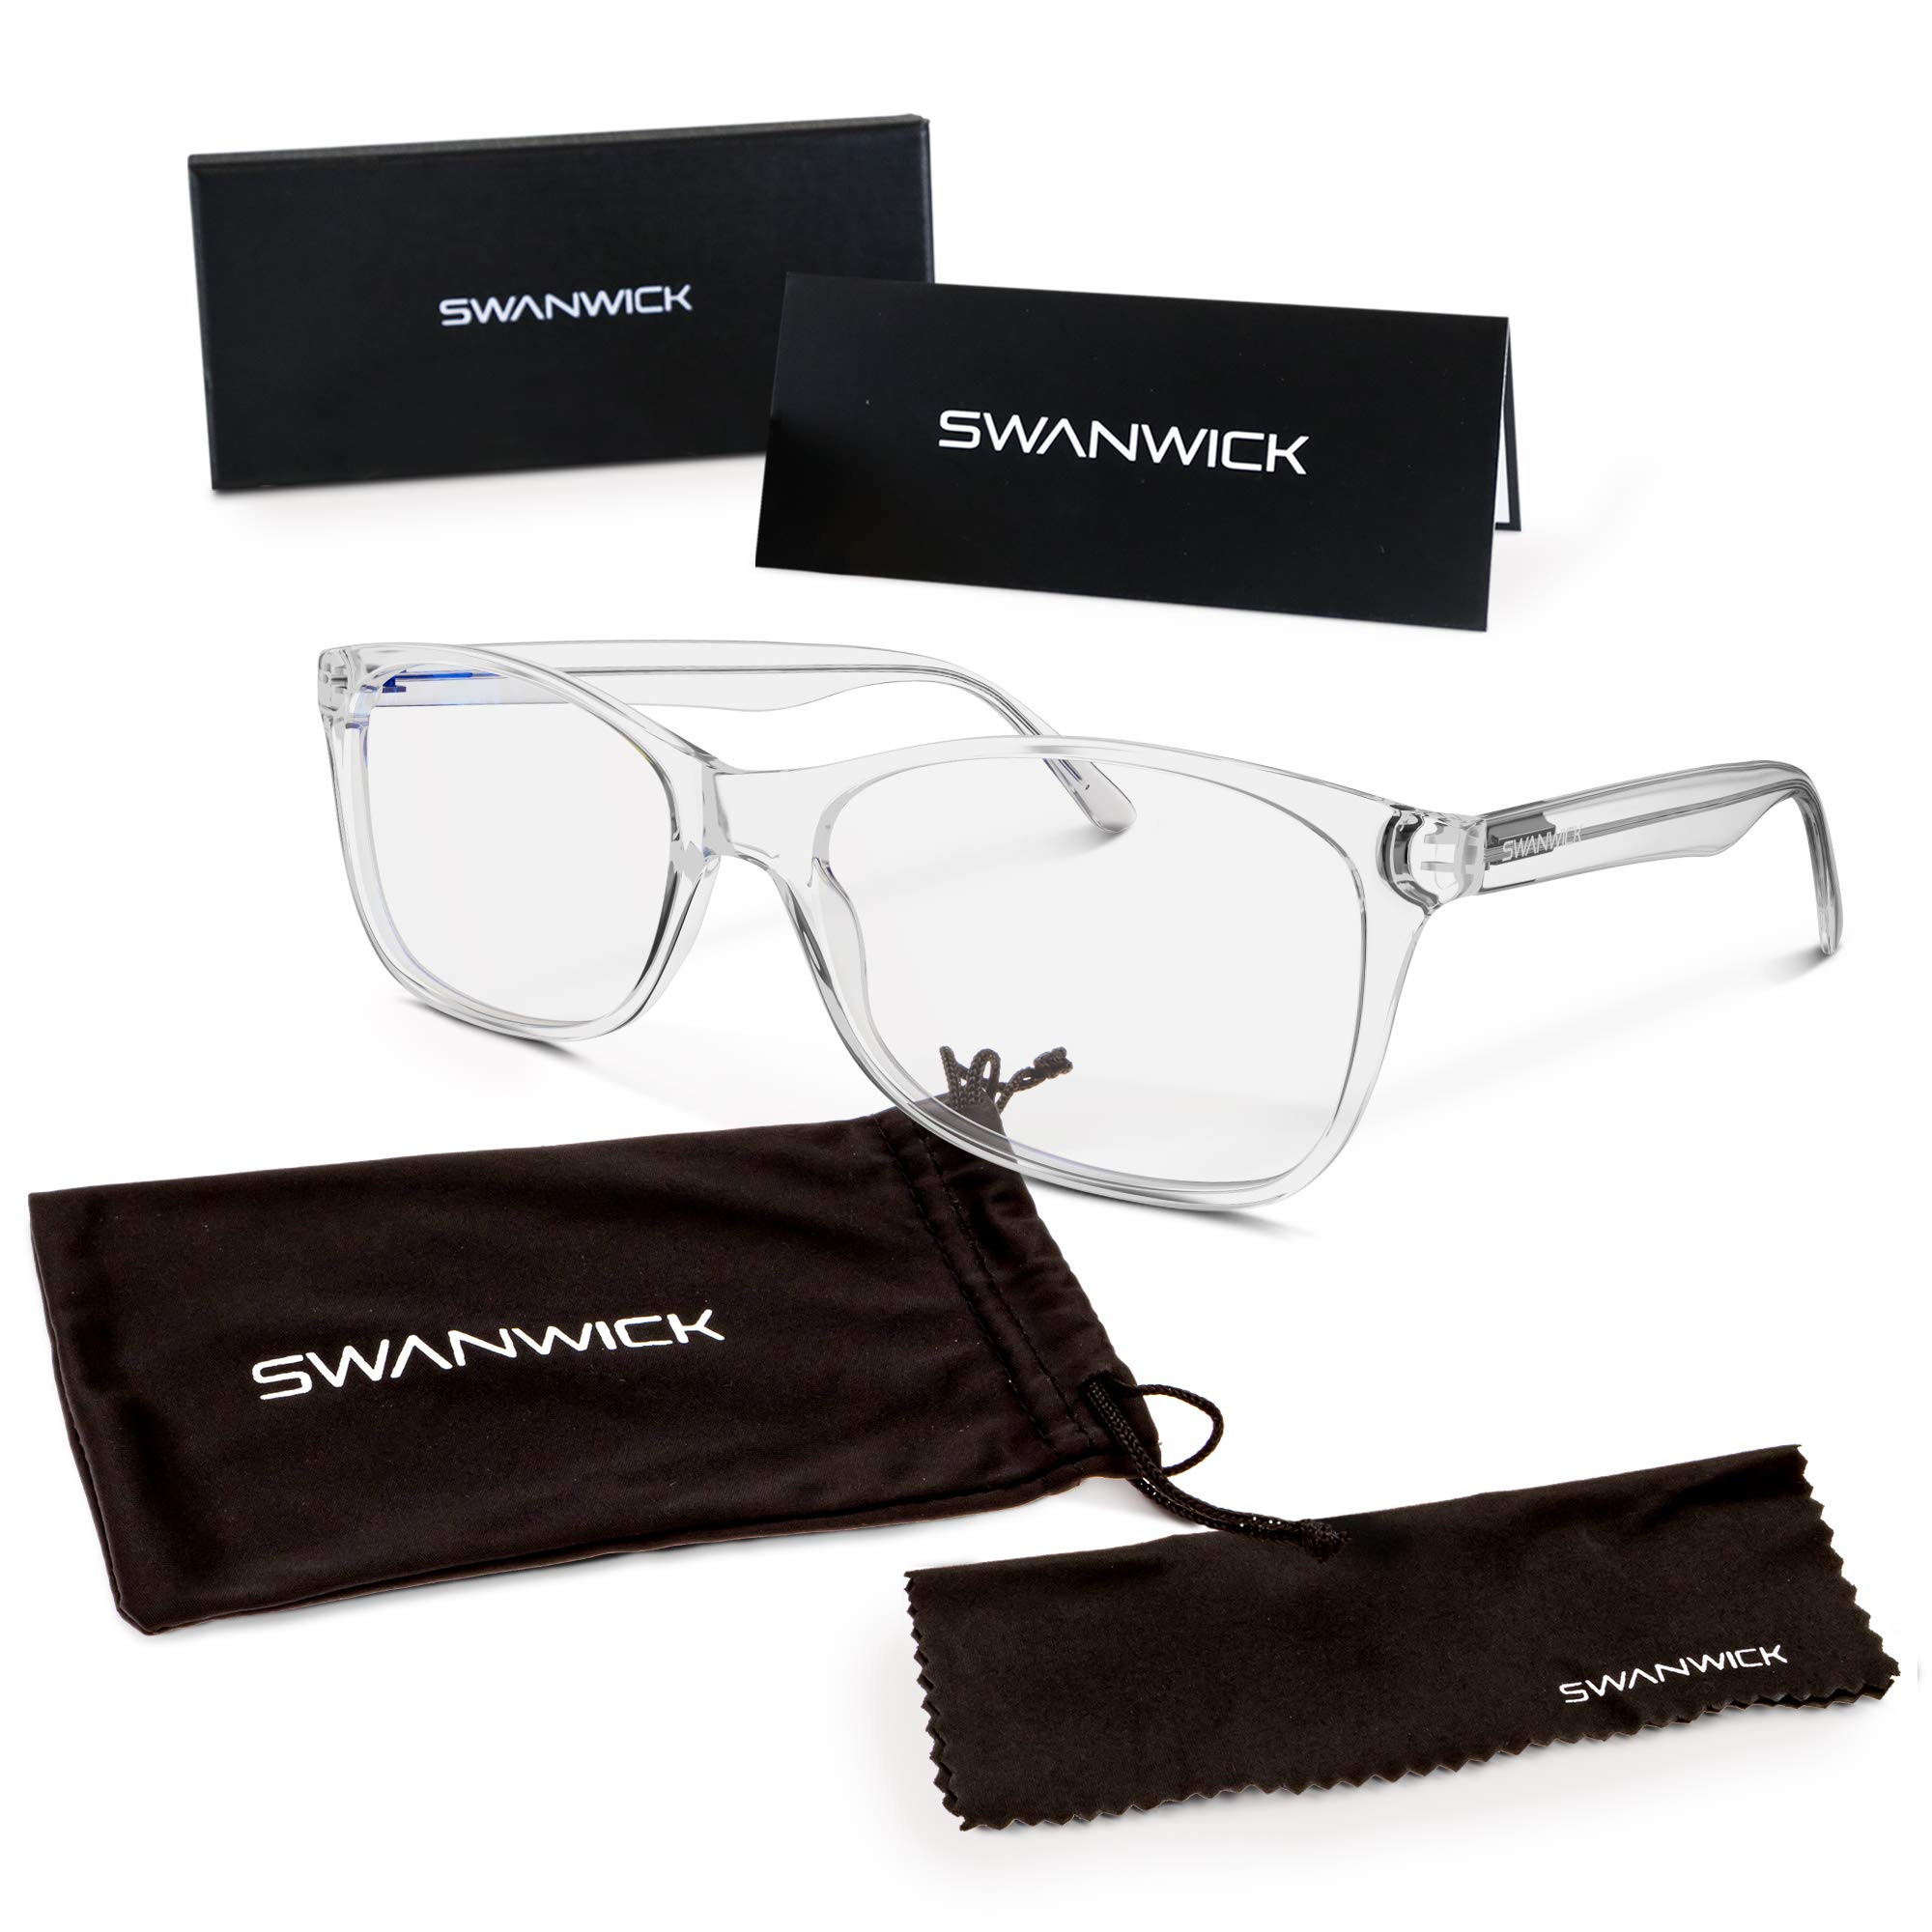 Computer Glasses by Swanwick - Anti-Glare for Gaming, Reading or TV Screens - Untinted Blue Light Blocking Clear Lens Prevents Eyestrain- (Diamond) Regular